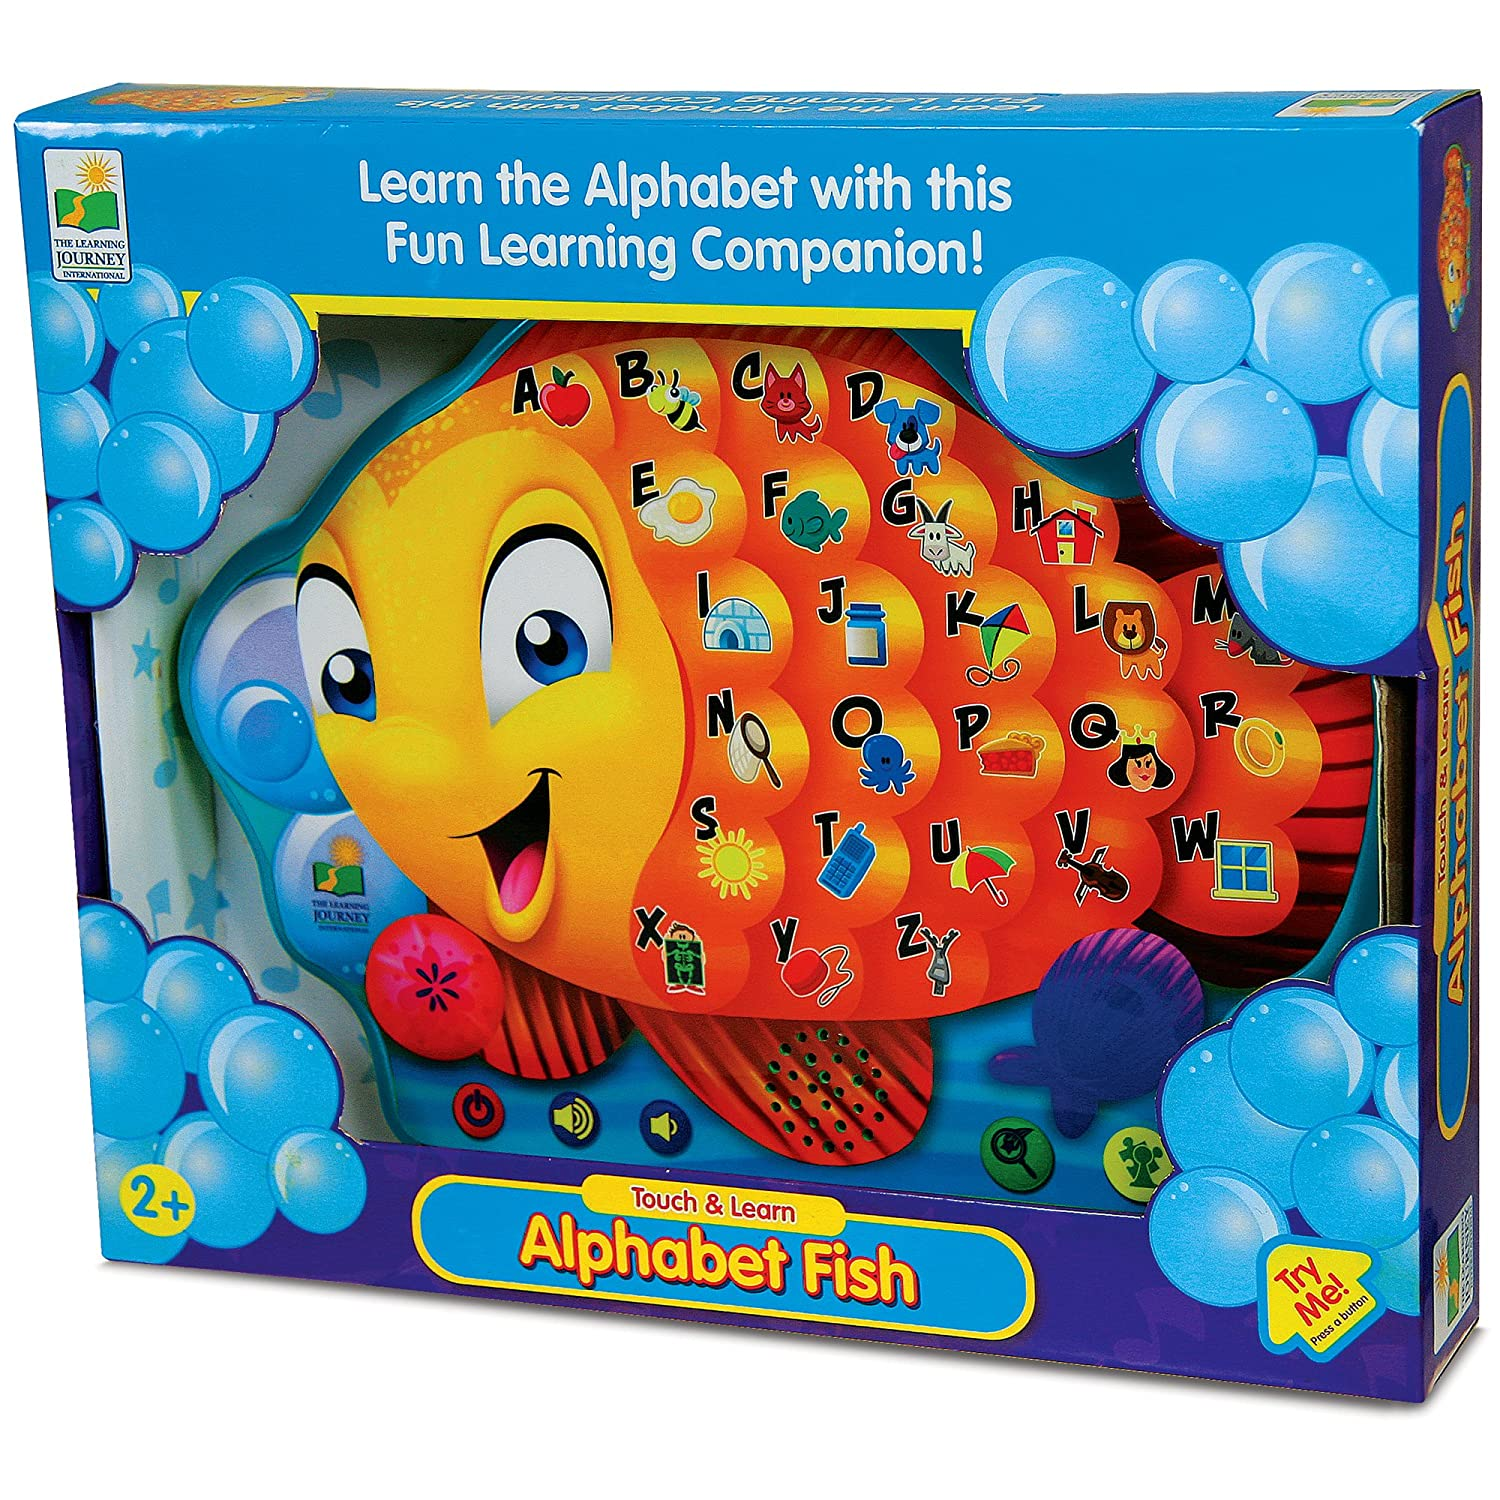 Amazon.com: The Learning Journey Touch & Learn, Alphabet Fish: Toys ...